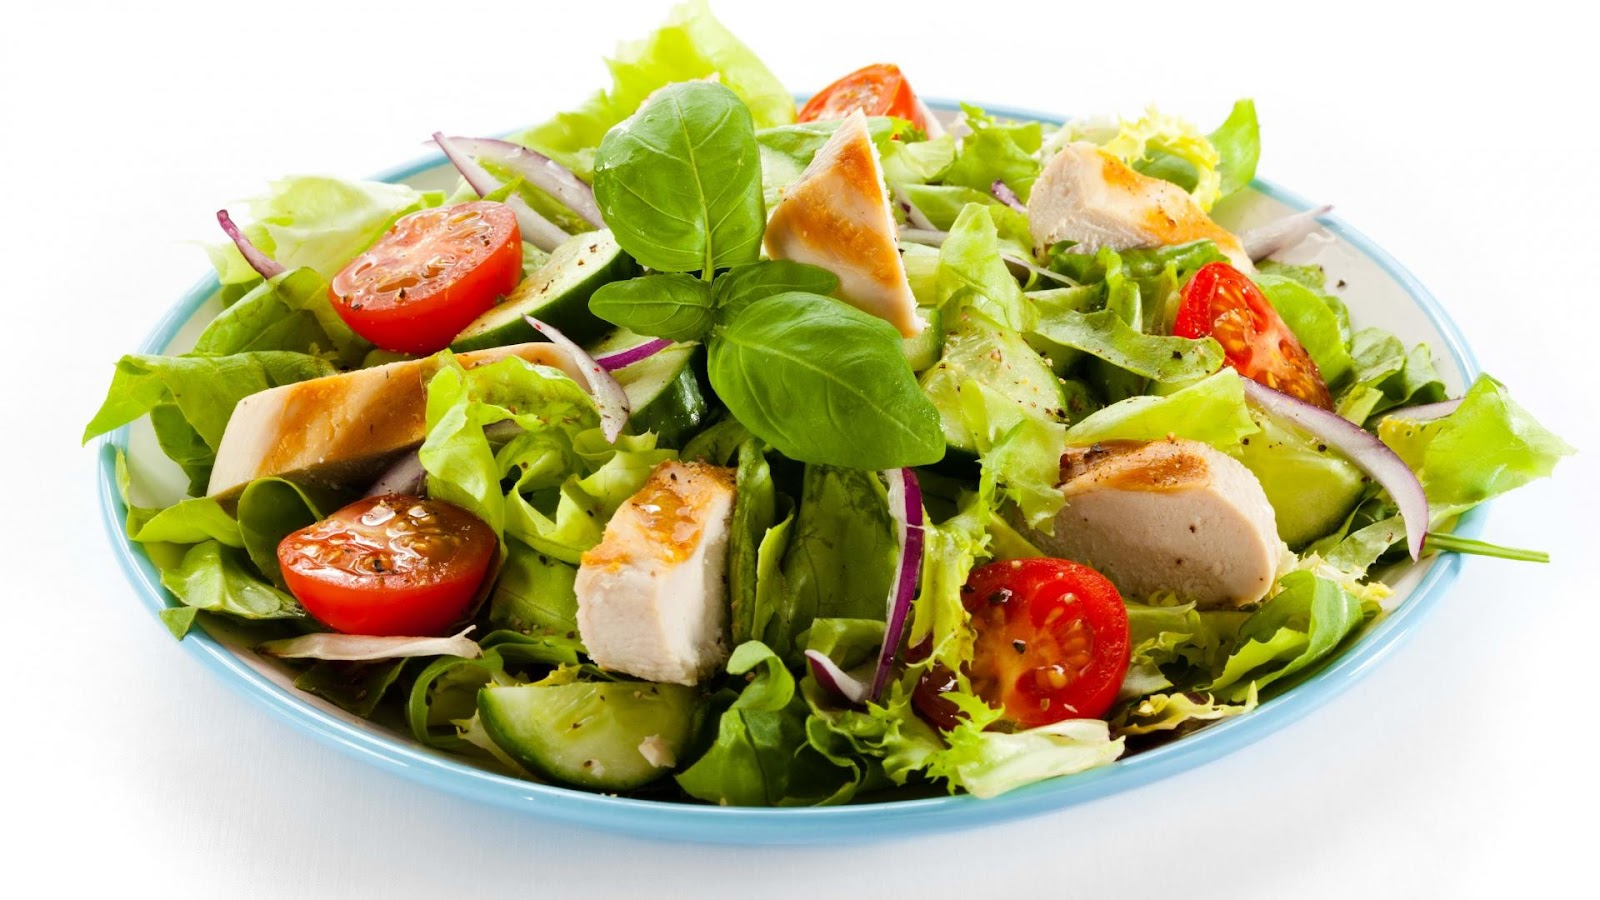 6876576-salad-wallpaper.jpg